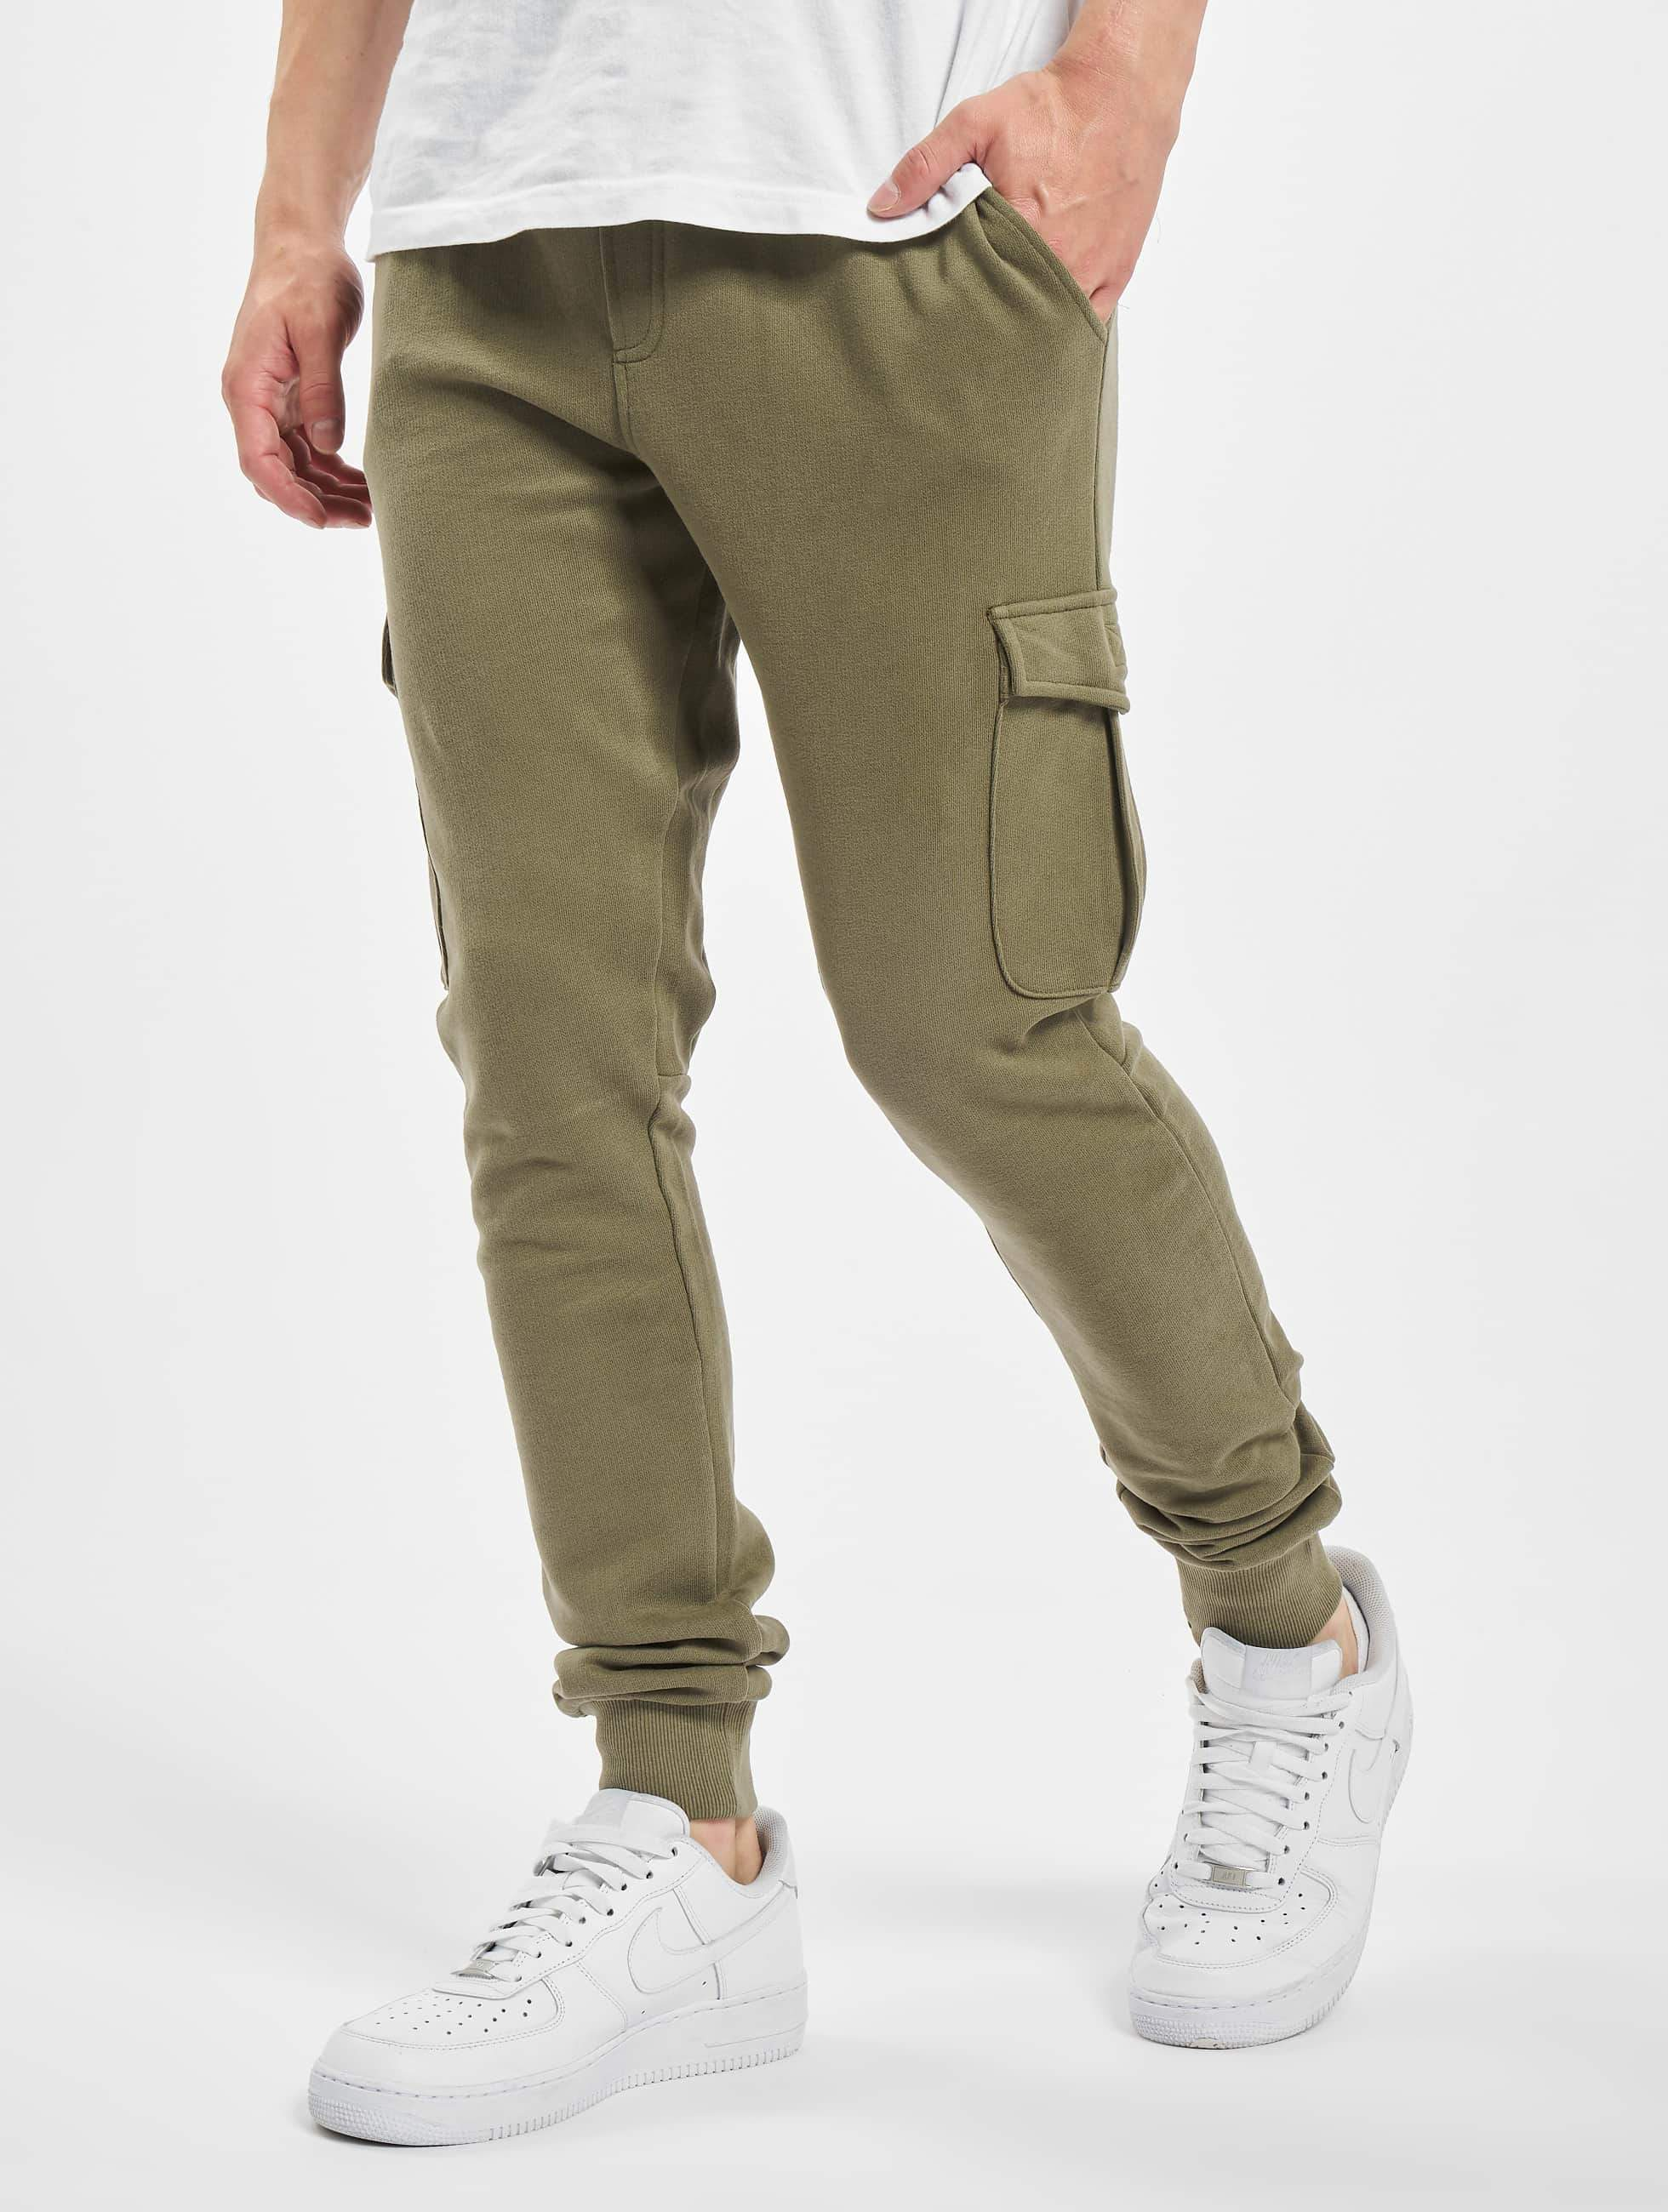 Baggy Joggingbroek Mannen.Urban Classics Broek Joggingbroek Fitted Cargo In Olijfgroen 294073